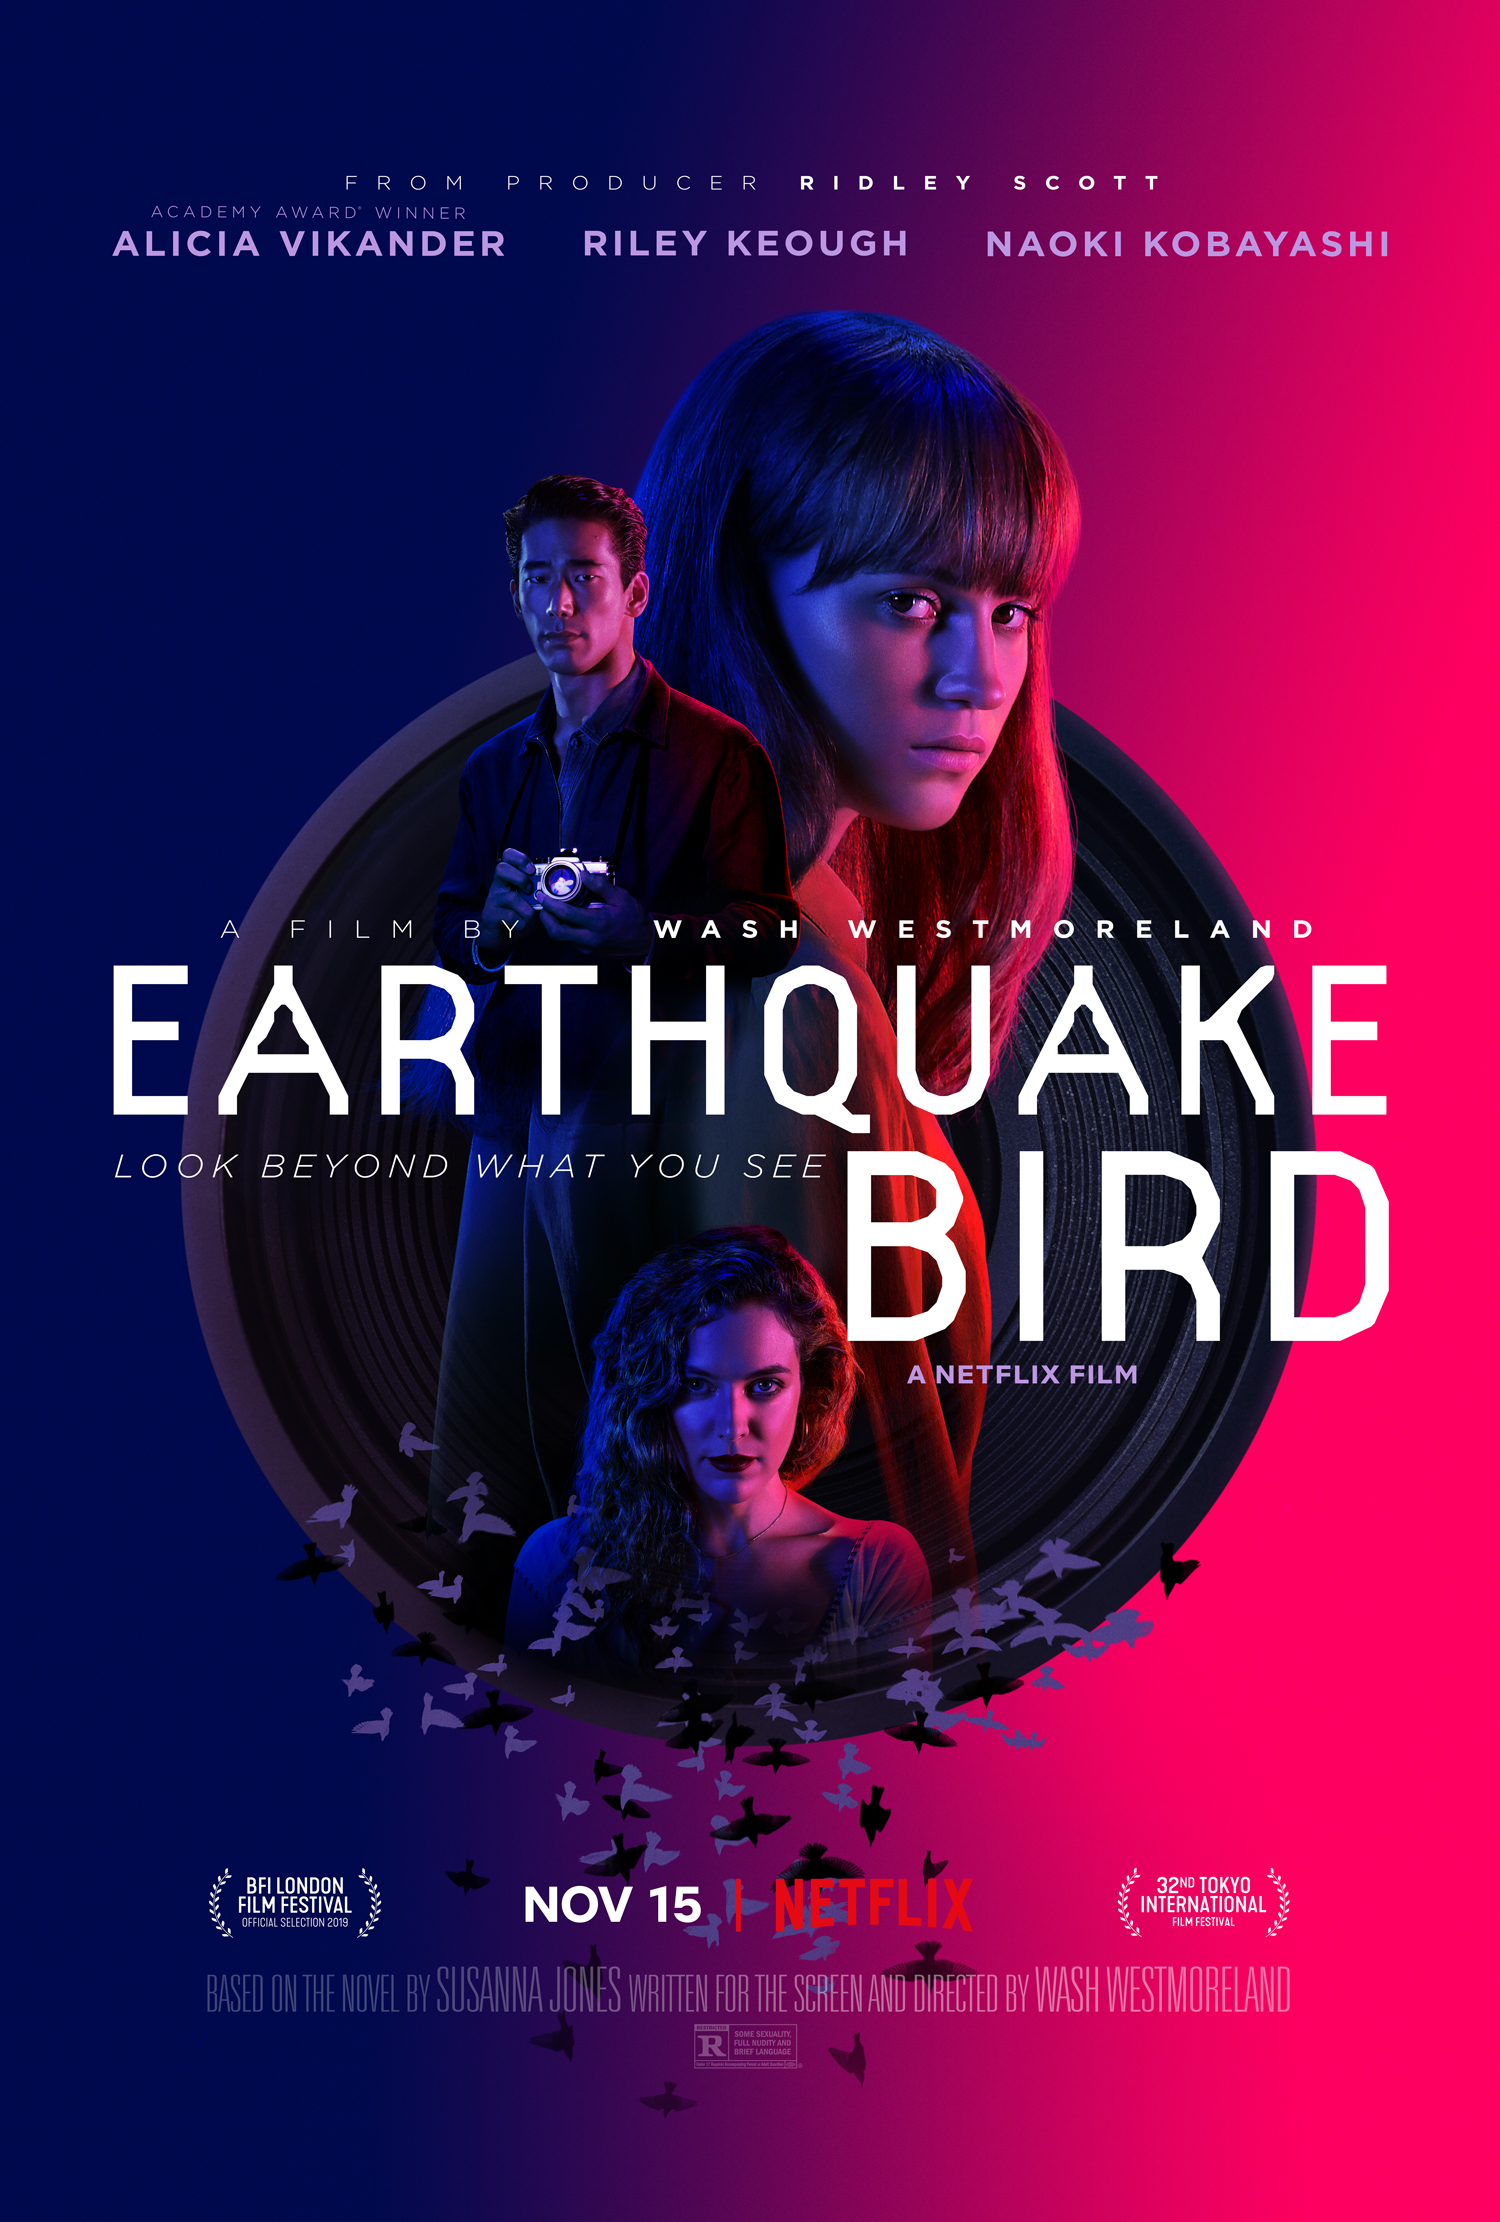 Earthquake Bird 2019 IMDb